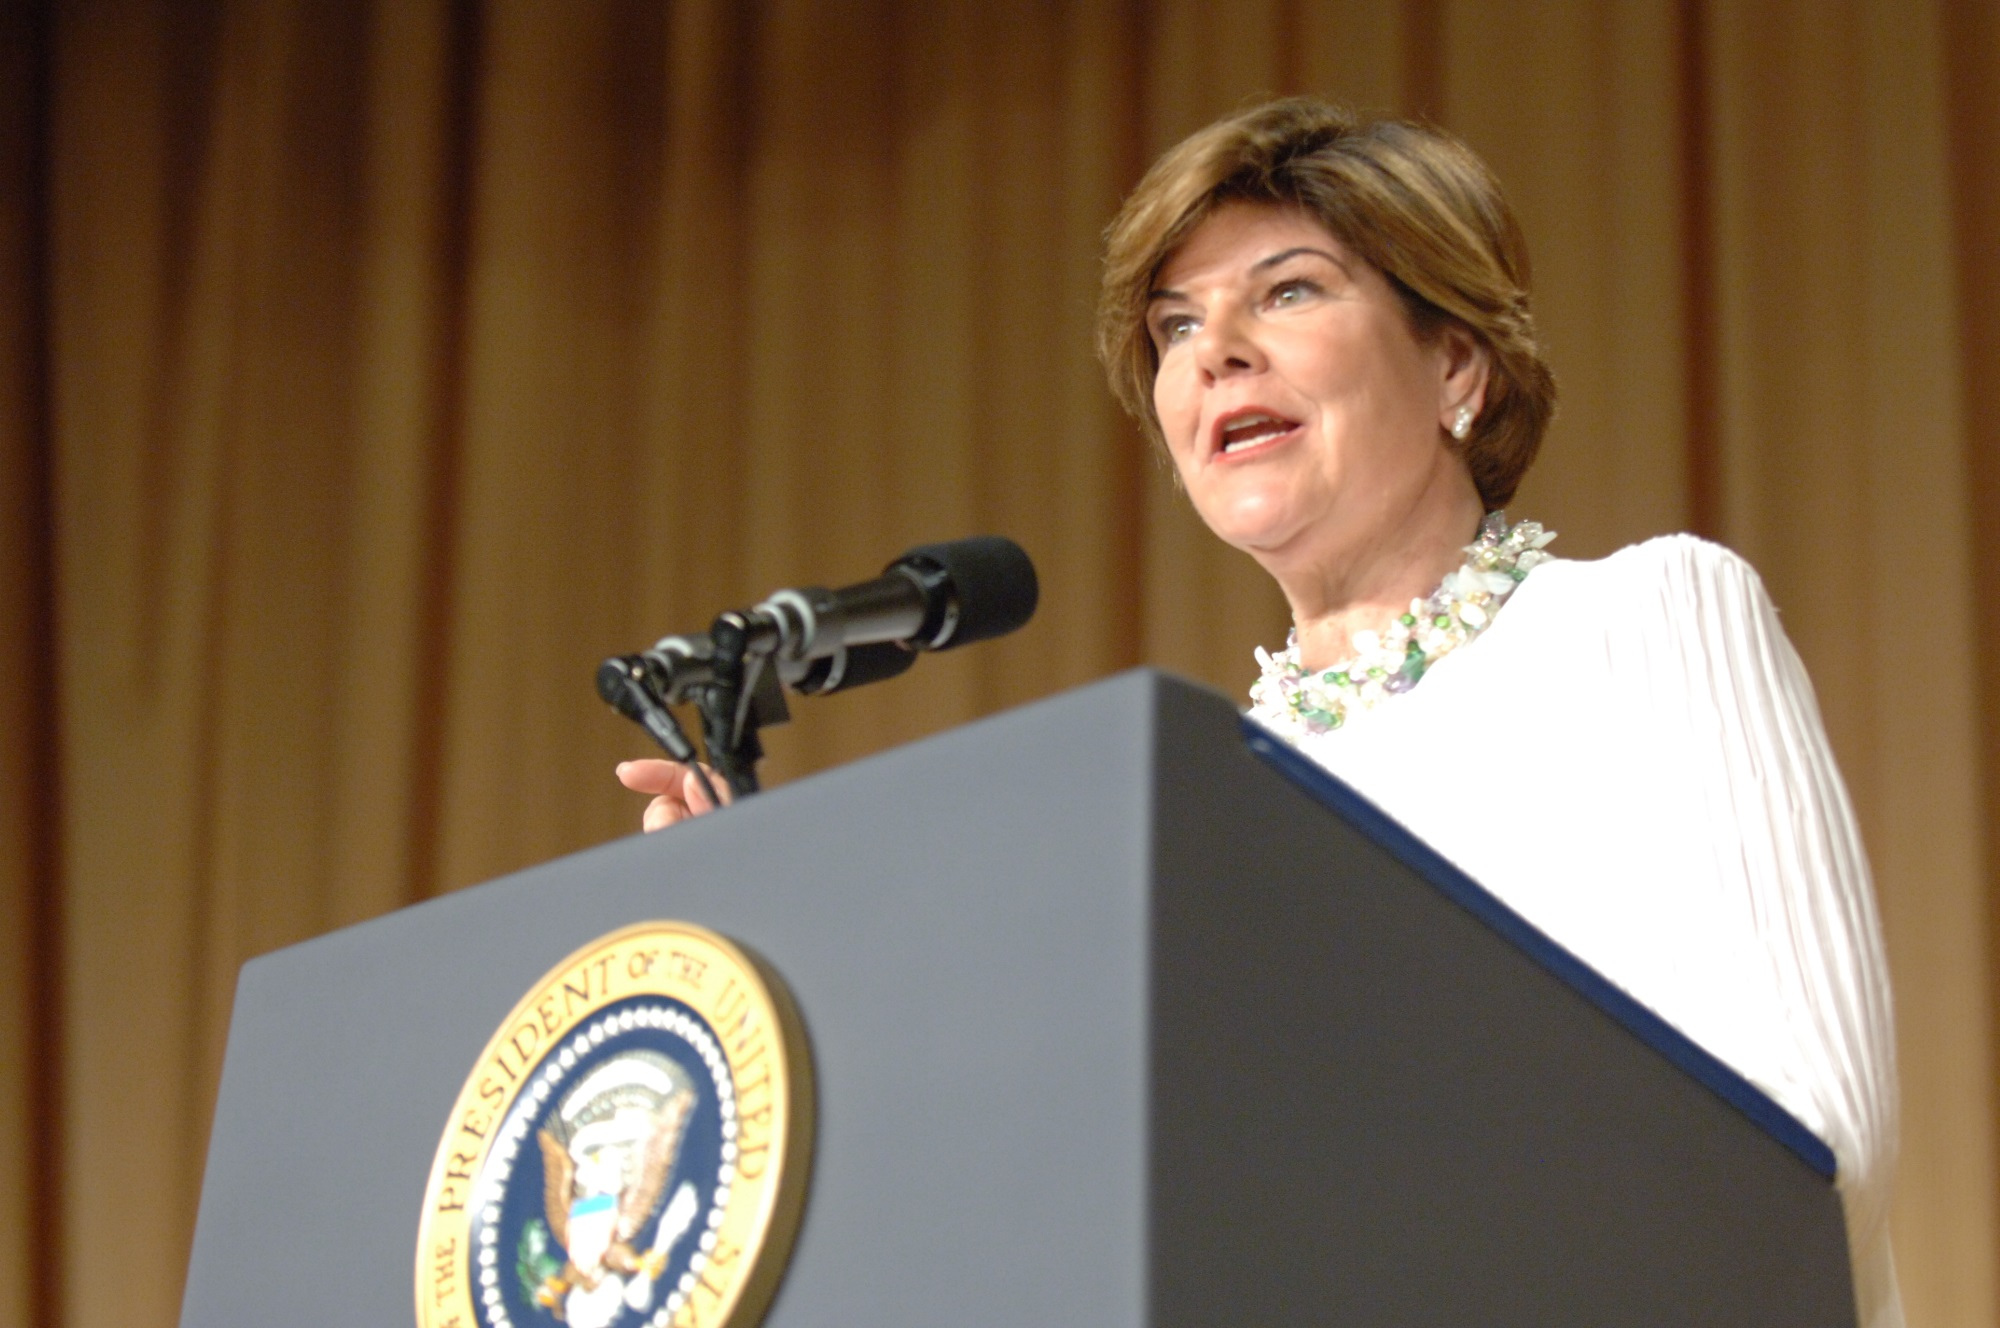 Ann Compton at the presidential podium, 2007, photograph courtesy of ABC News.